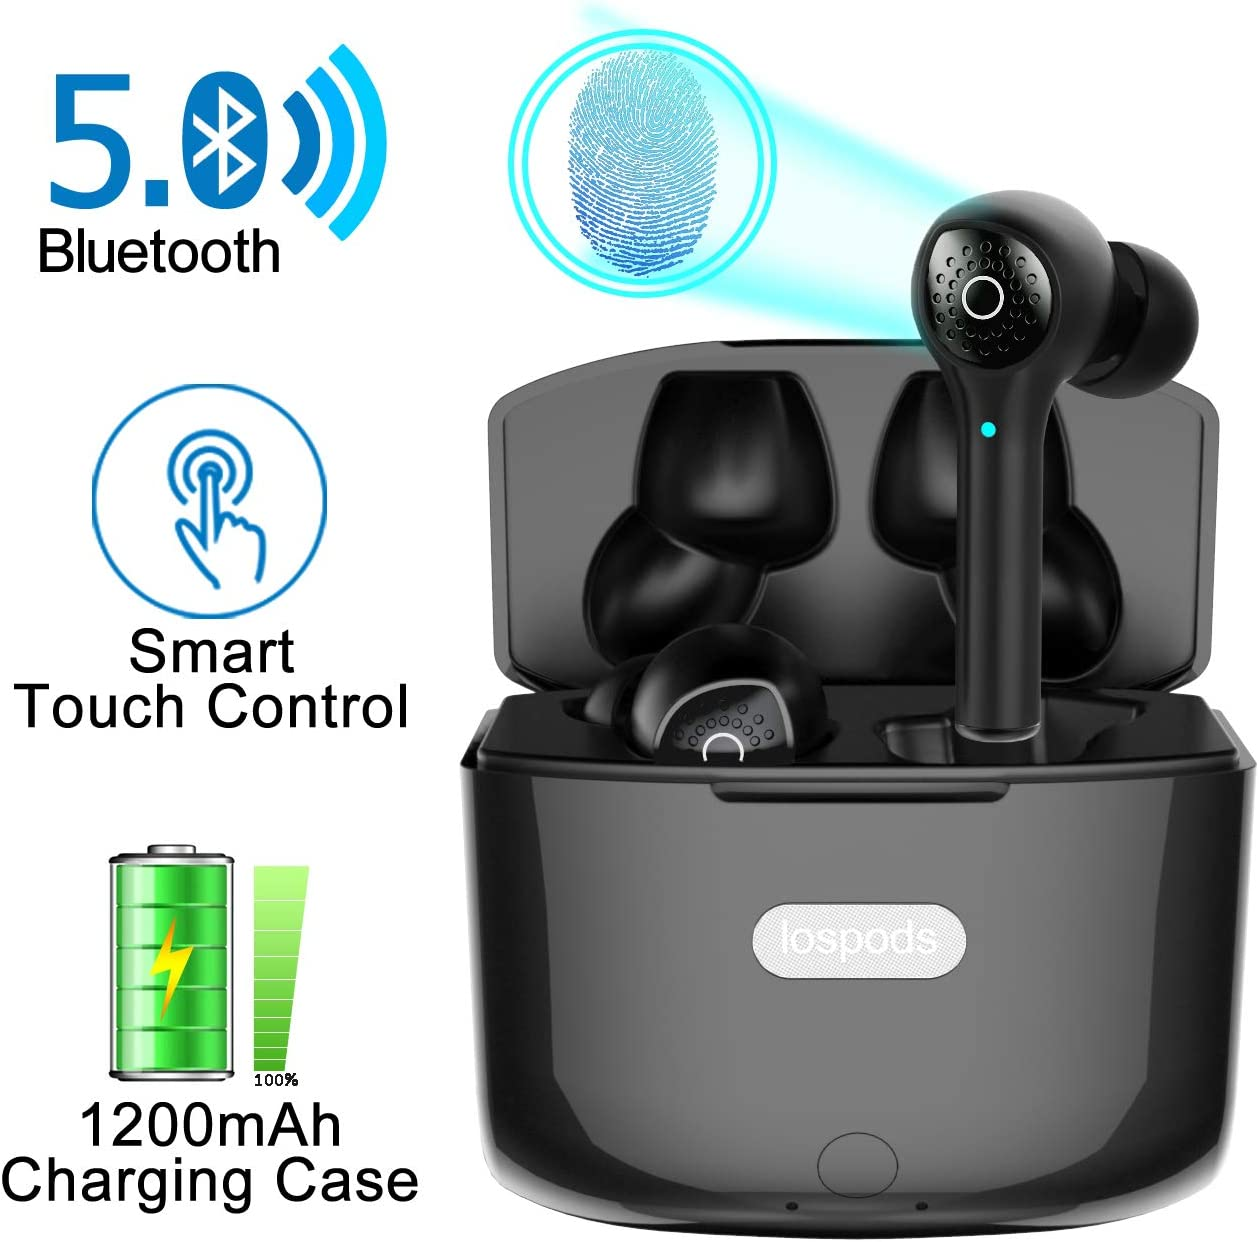 Amazon Com Wireless Earbuds With Crystal Clear Deep Bass Stereo Sound Bluetooth 5 0 Headphones With Smart Touch Control Noise Cancellation Mic Portable 1200 Mah Charging Case For Iphone And Android Home Audio Theater